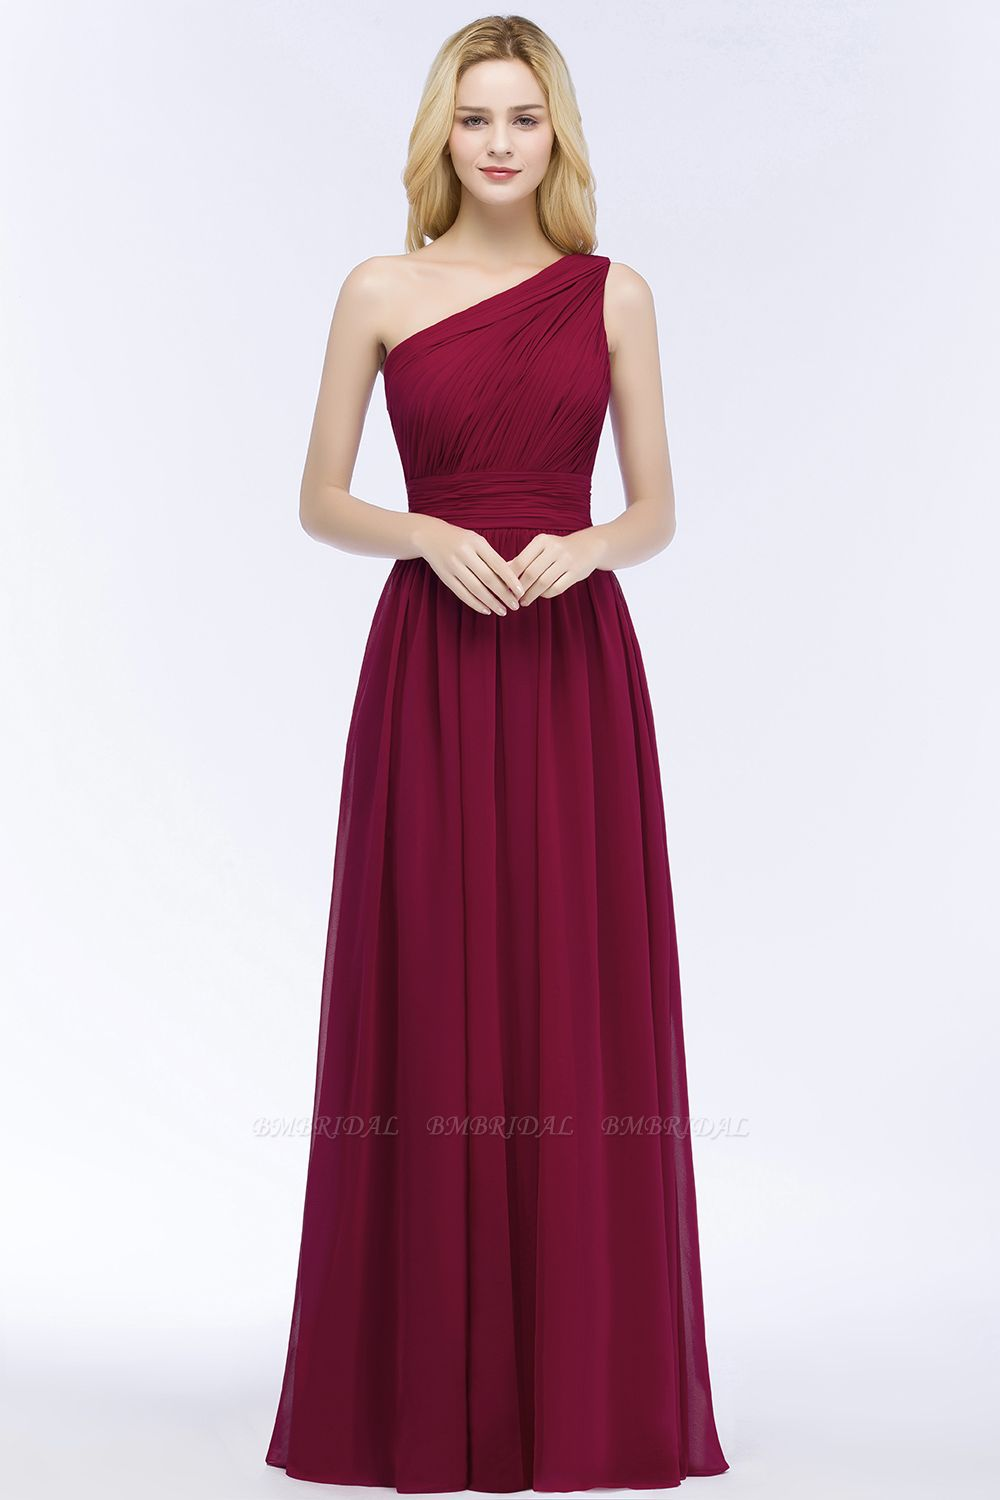 Chic One-shoulder Sleeveless Burgundy Chiffon Bridesmaid Dresses Online